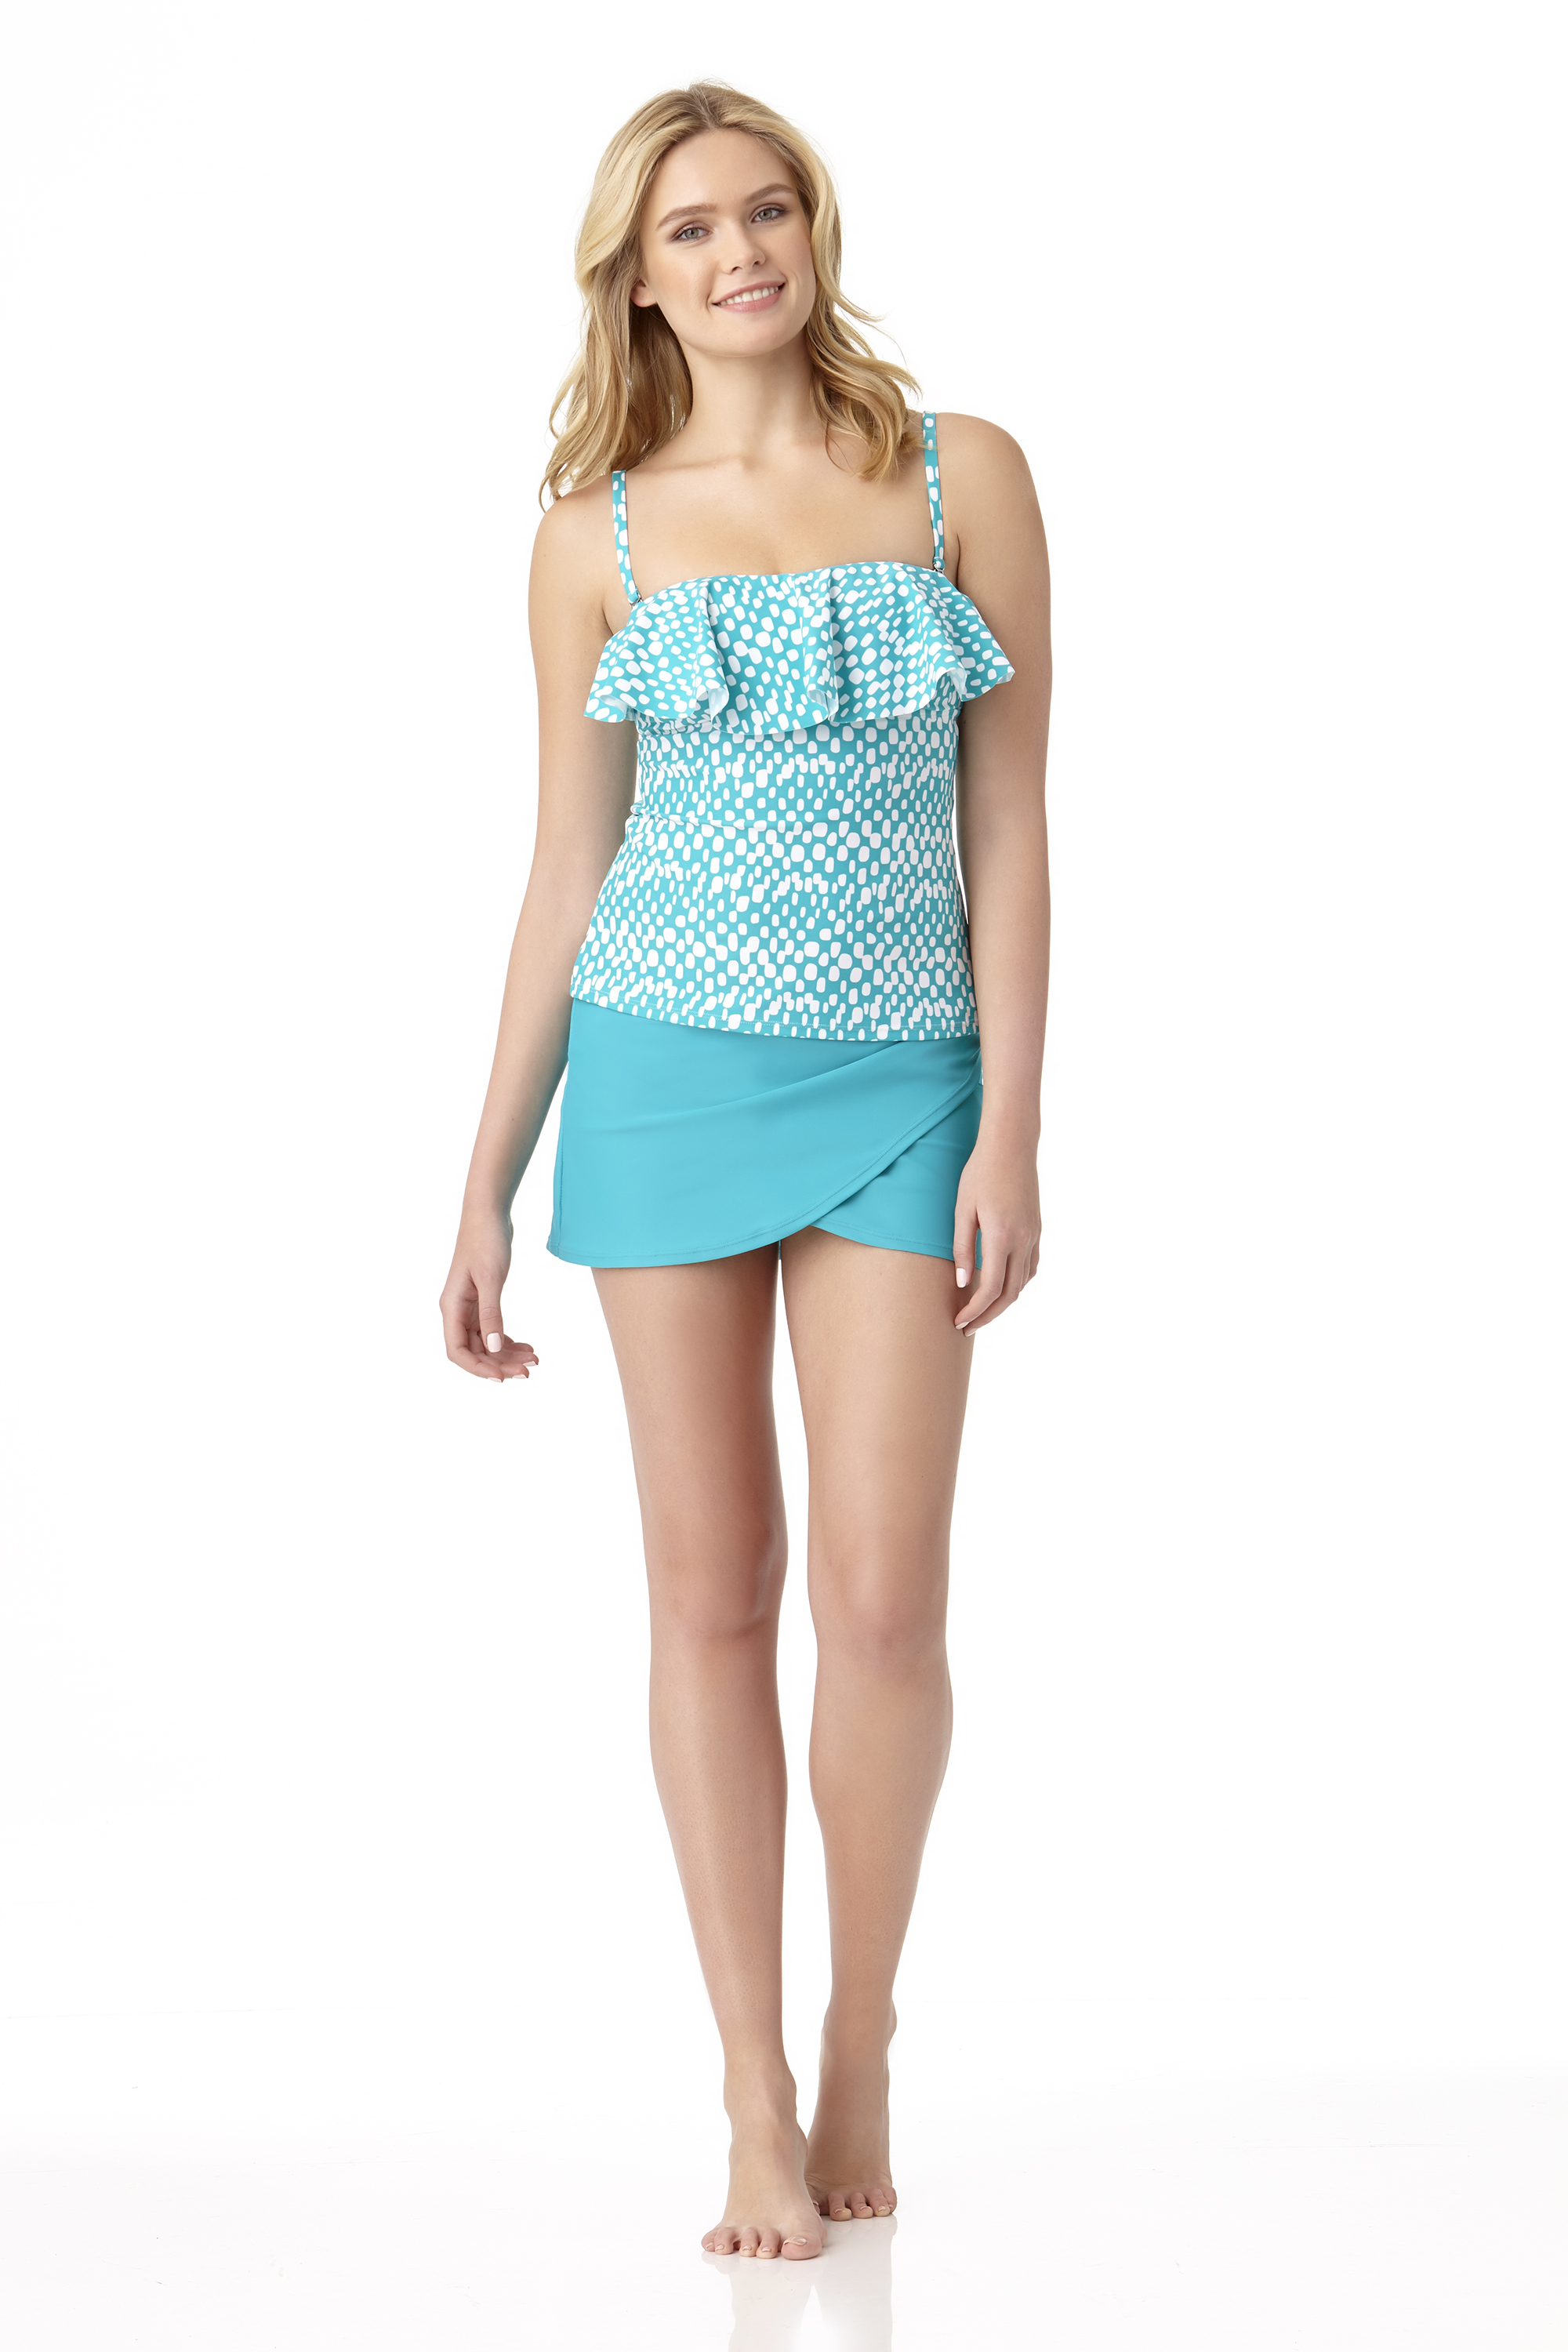 STYLE # CTL37434 / CTL37730B - Nairobi Bandini TopSOLD OUTSolid Wrap Skirted BottomSOLD OUT